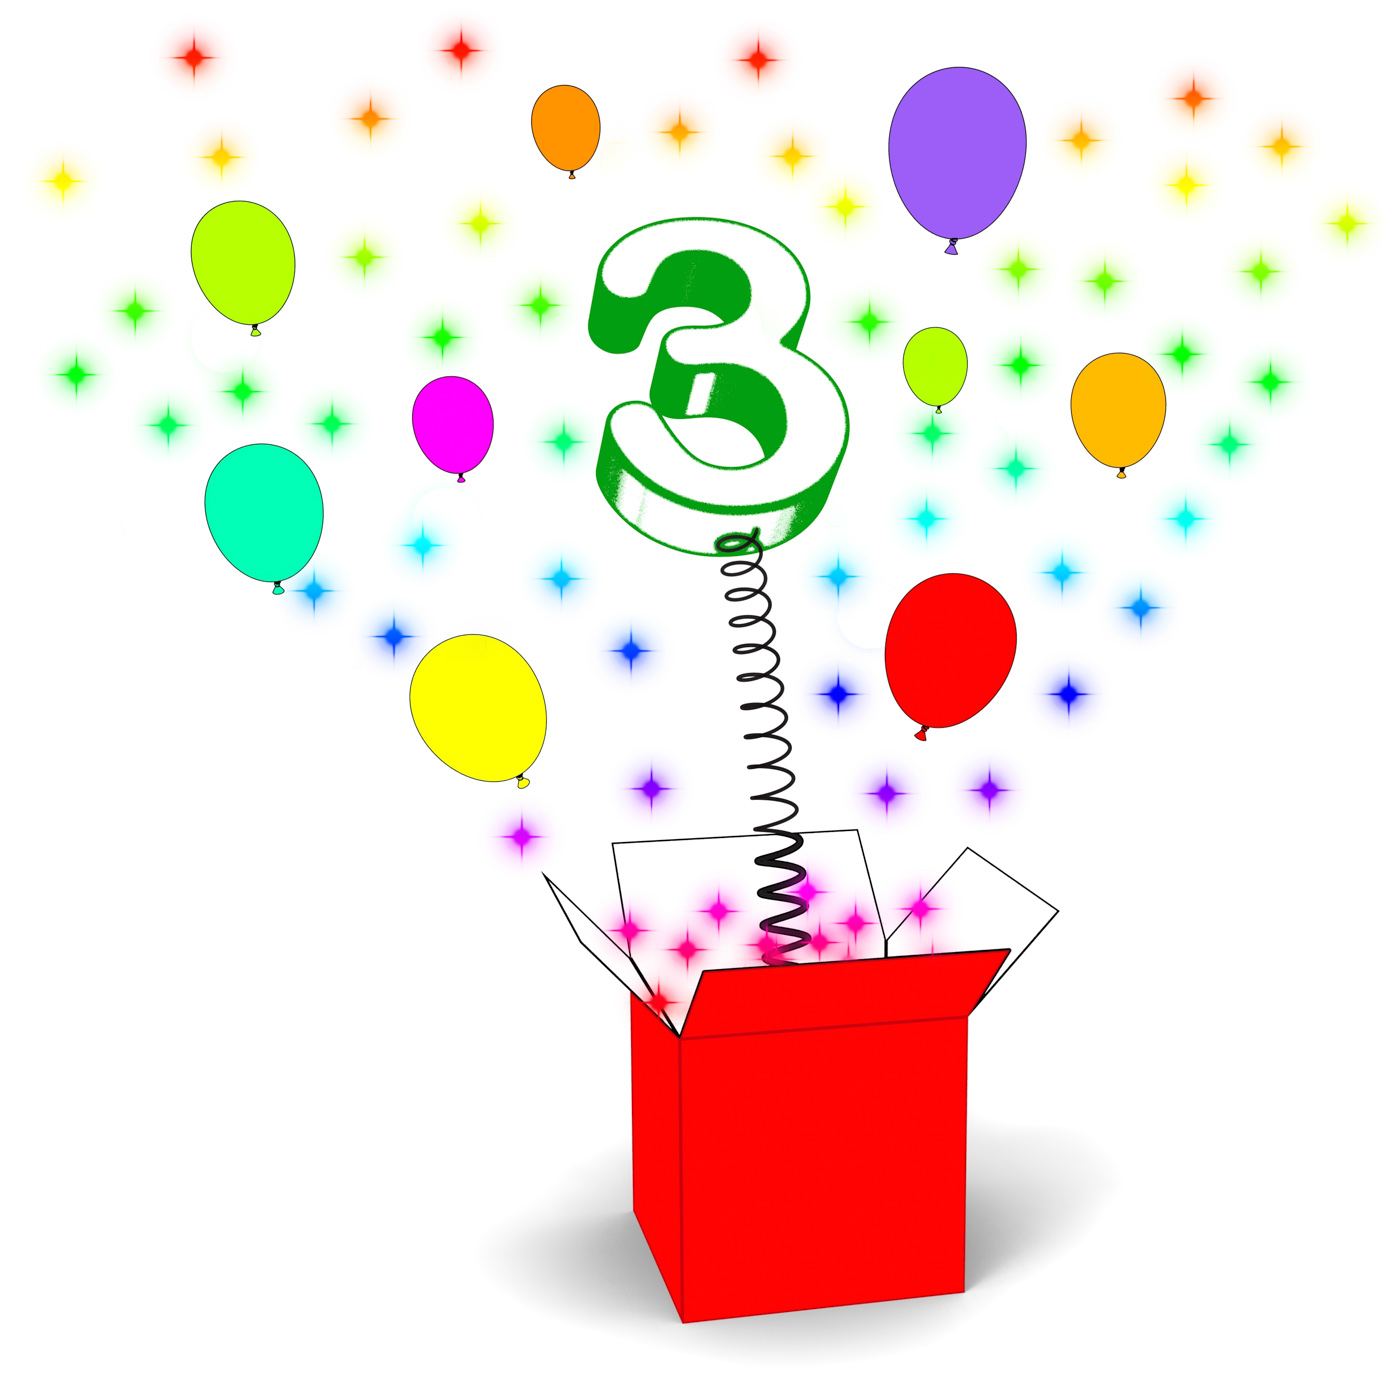 Number Three Surprise Box Means Celebration And Colourful Balloons, 3, Number, Surprisebox, Surprise, HQ Photo